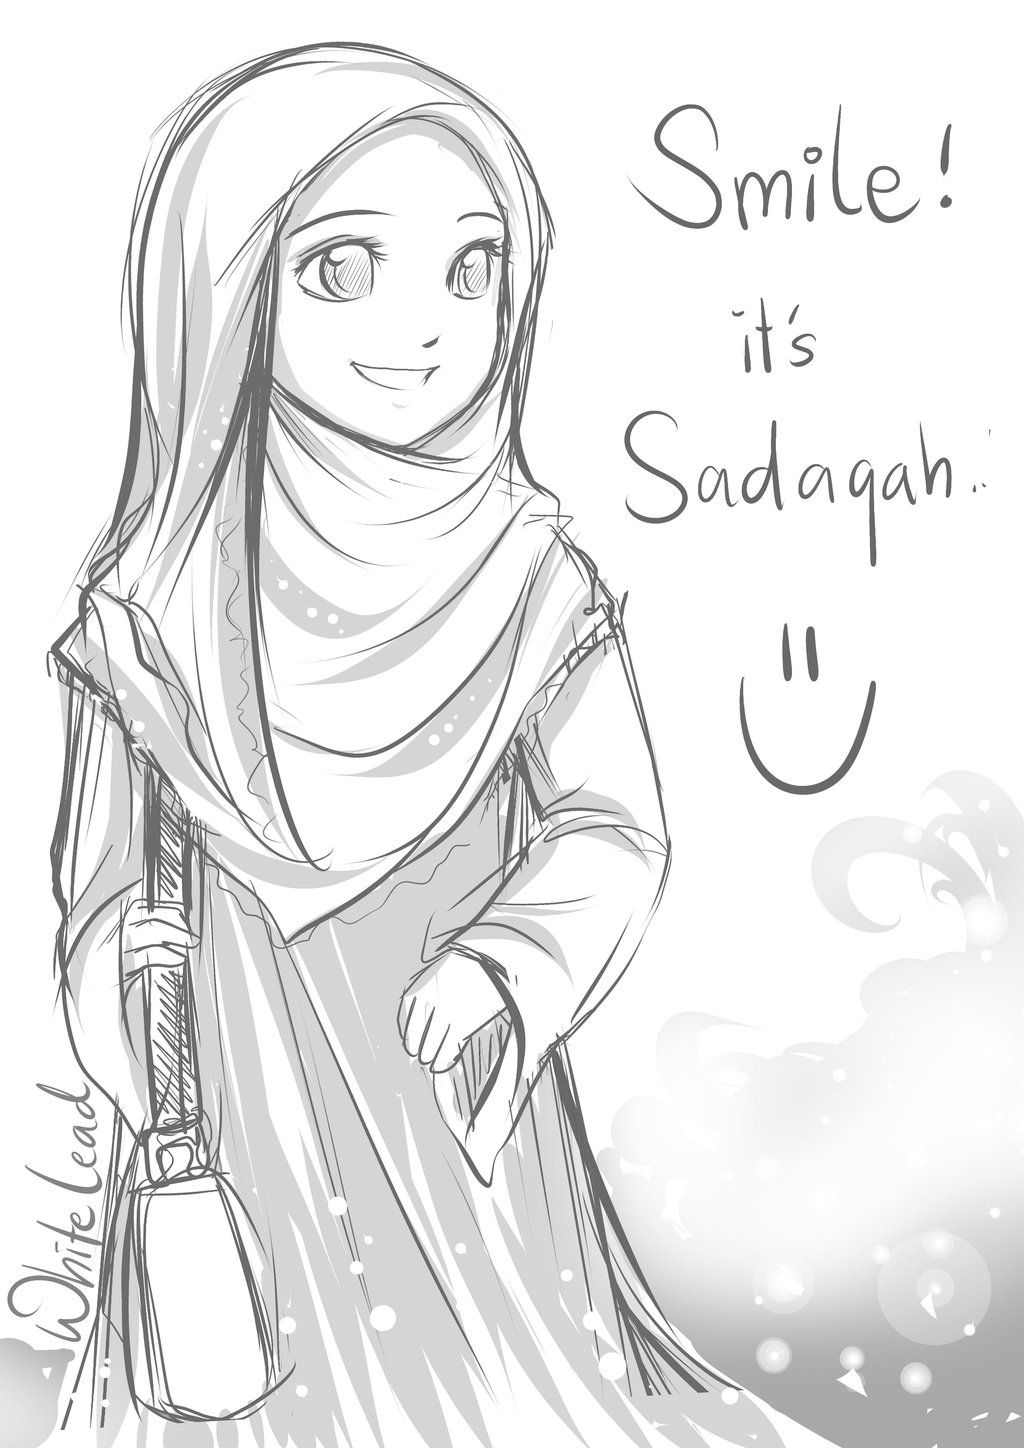 Smile Sadaqah By Whiteleadviantart On DeviantART